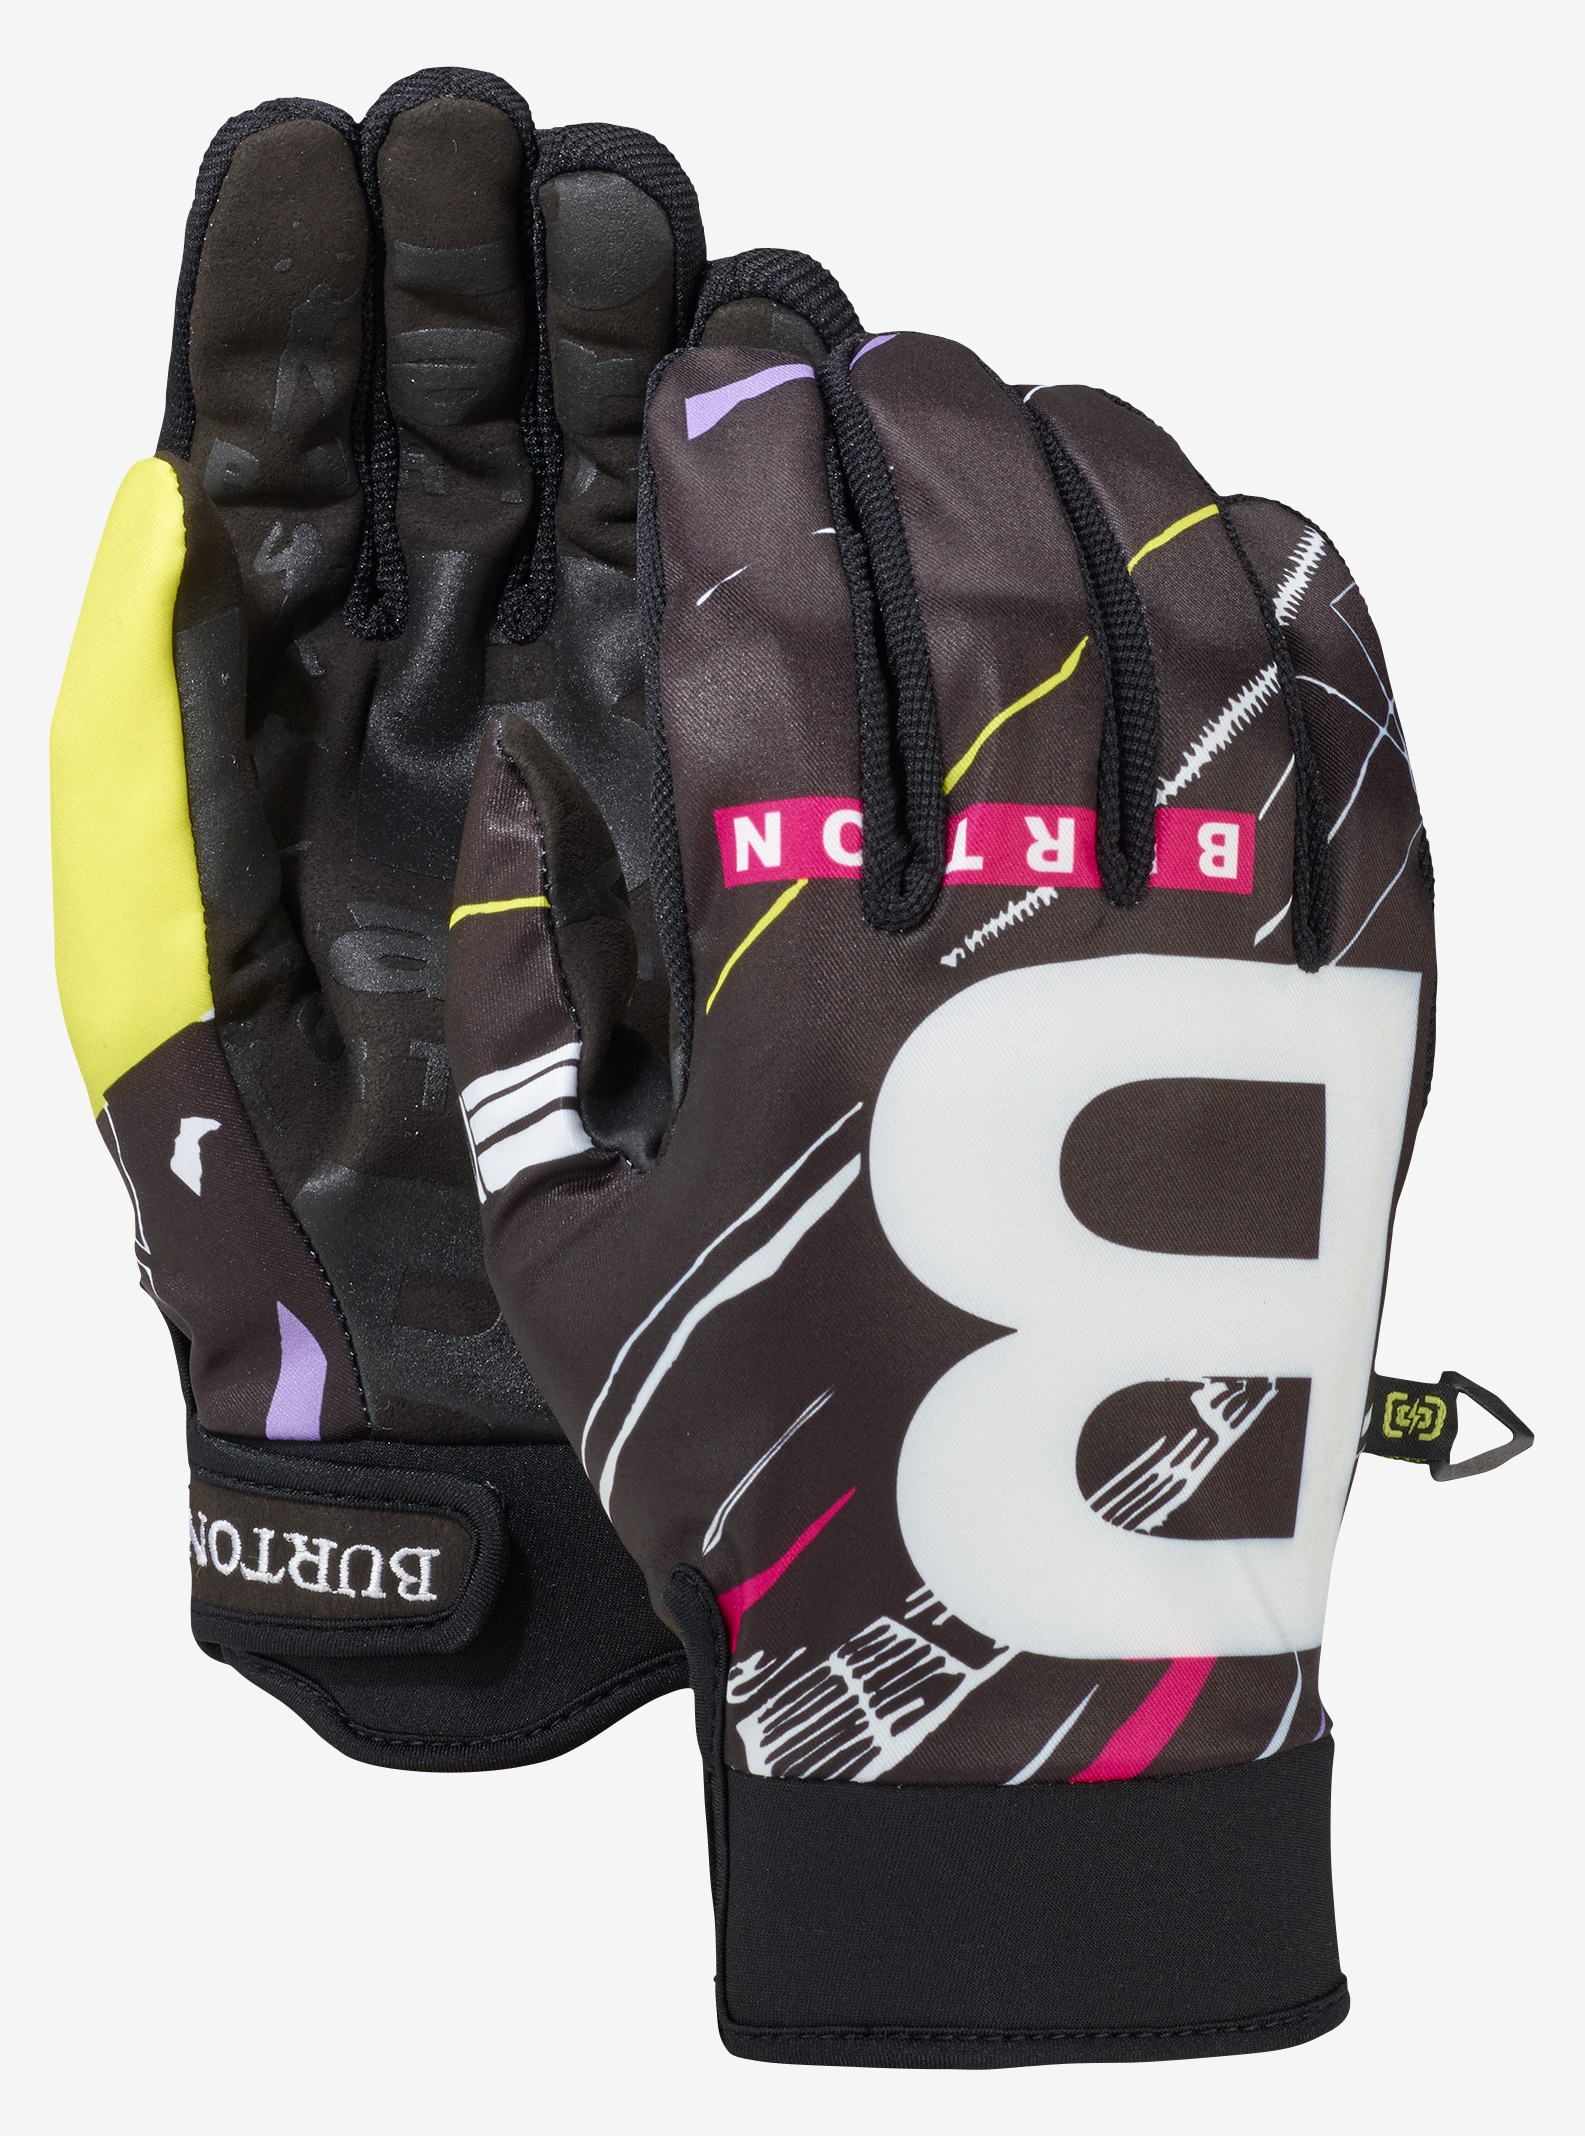 Men's Burton Spectre Glove shown in 1989